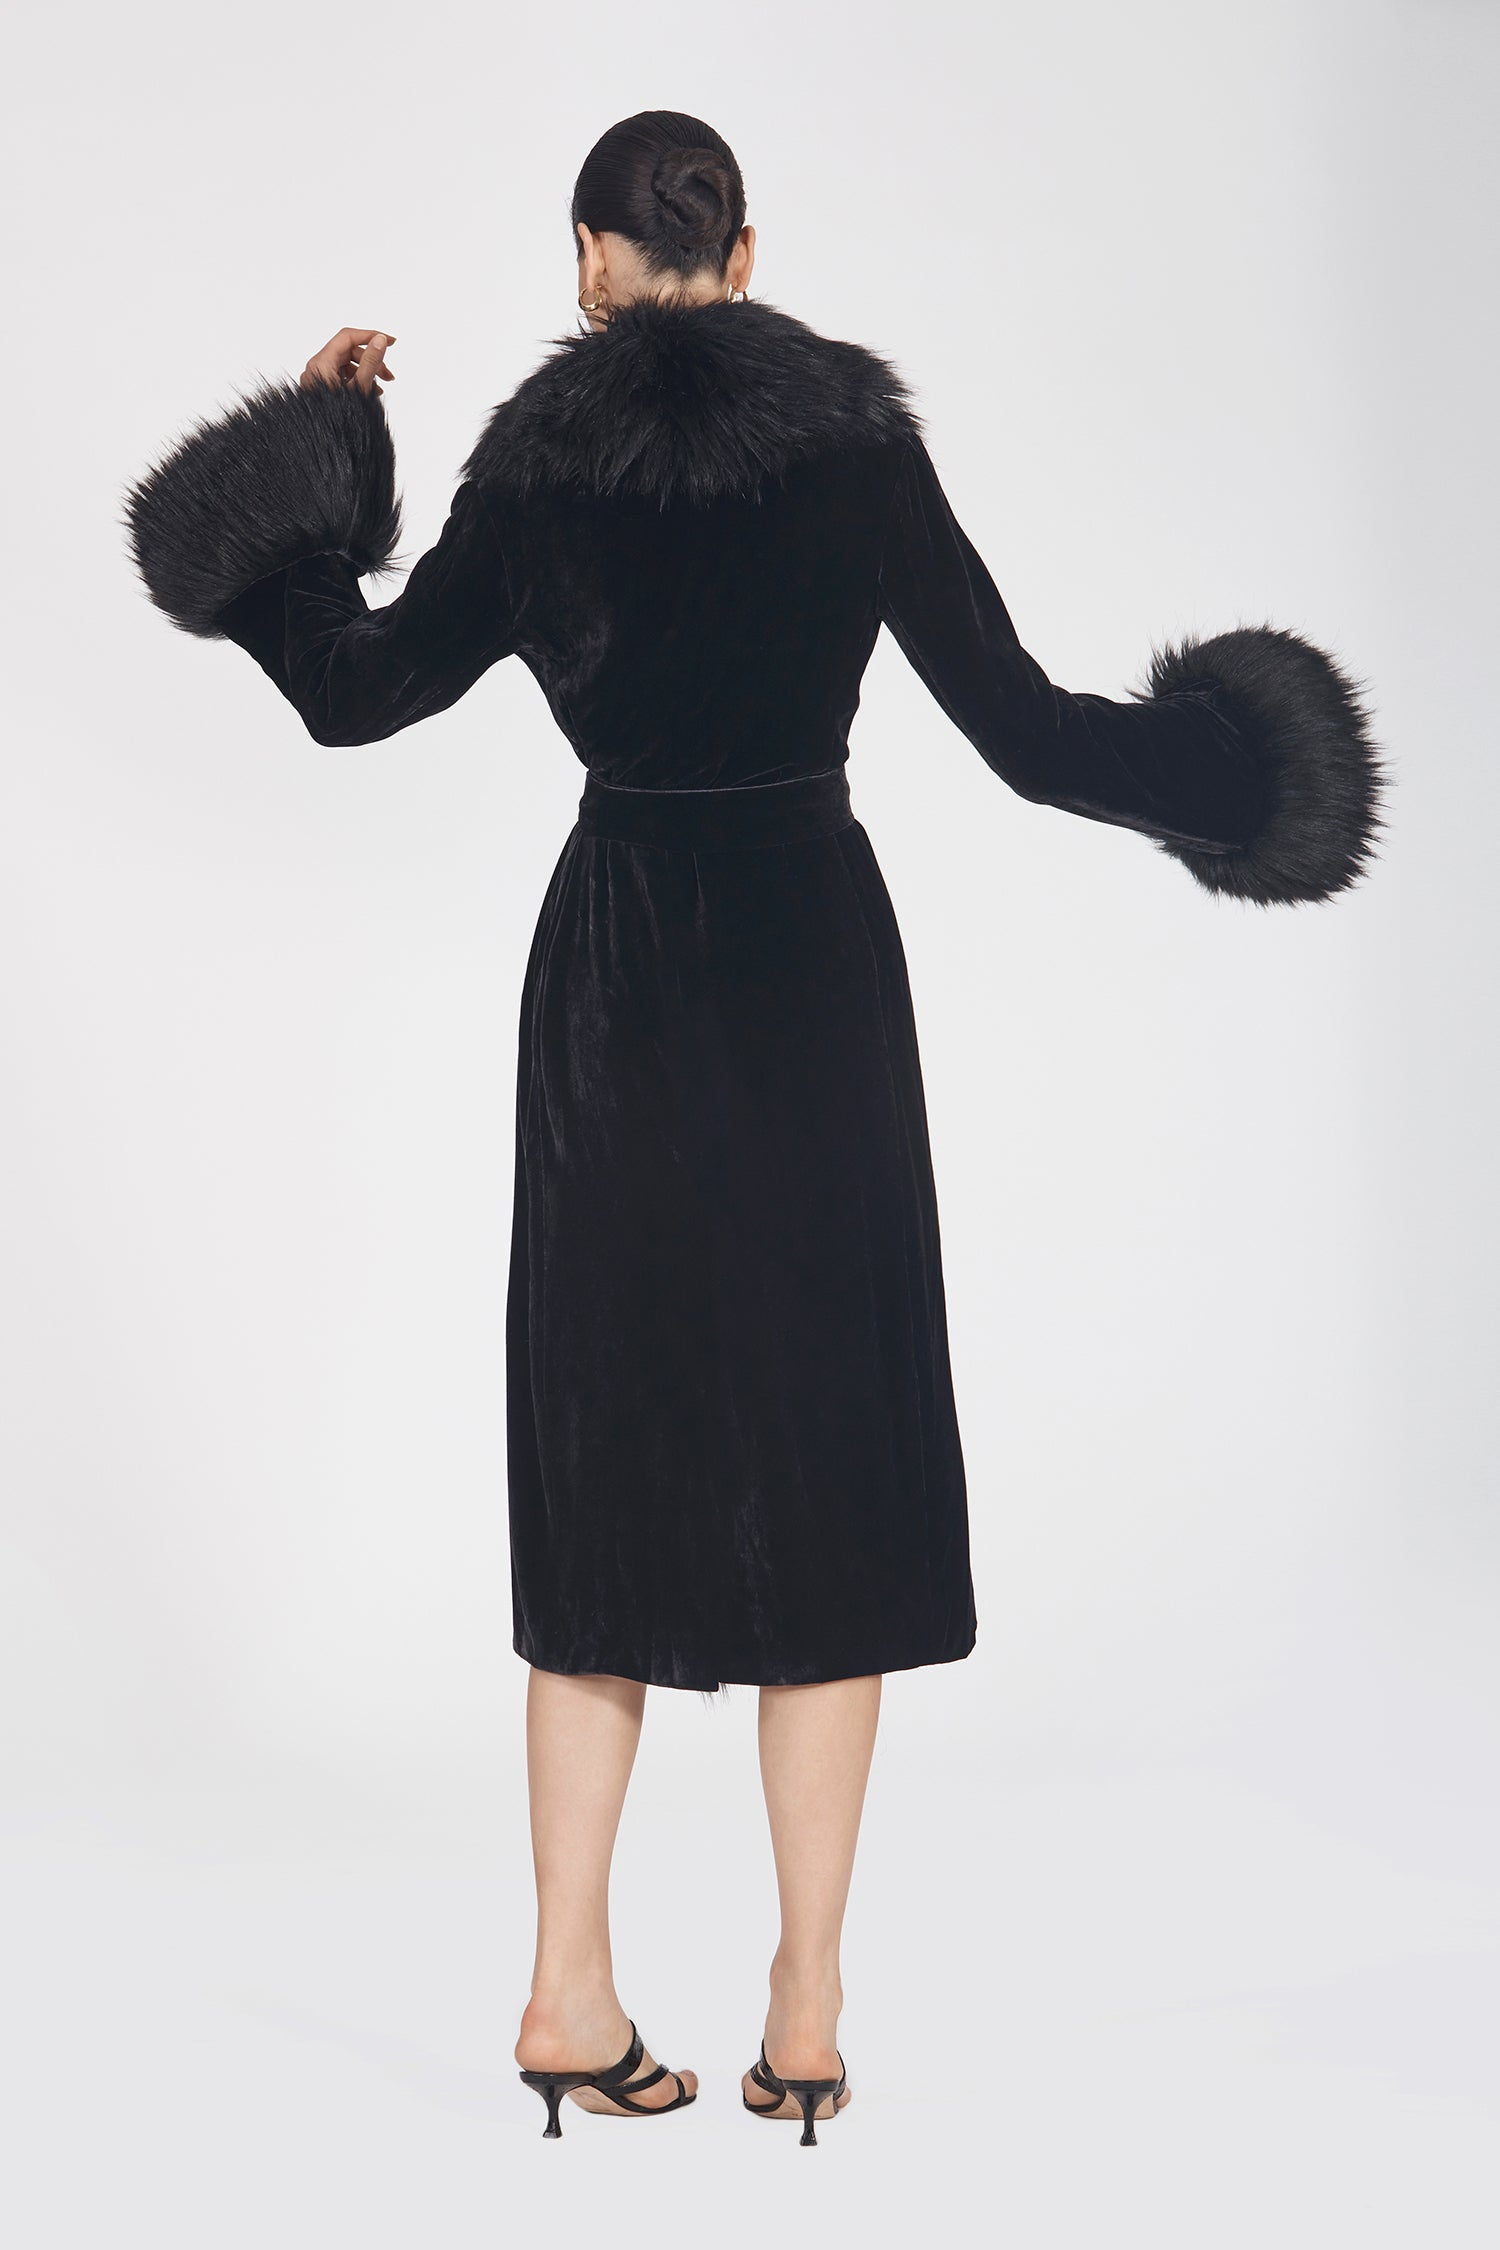 Marei1998's Iconic Powderpuff Long Velvet Coat In Black Color. The Silk Velvet Material, Combined With Faux Fur Trims, Creates A Contemporary Vintage Look. Featuring Wide Lapel Collar And Bell Sleeves, It Is Finished With A Self-Tie Belt To Define The Waist. As Worn By The Model. Back View. Resort 2020 Collection - Furless Friendship.